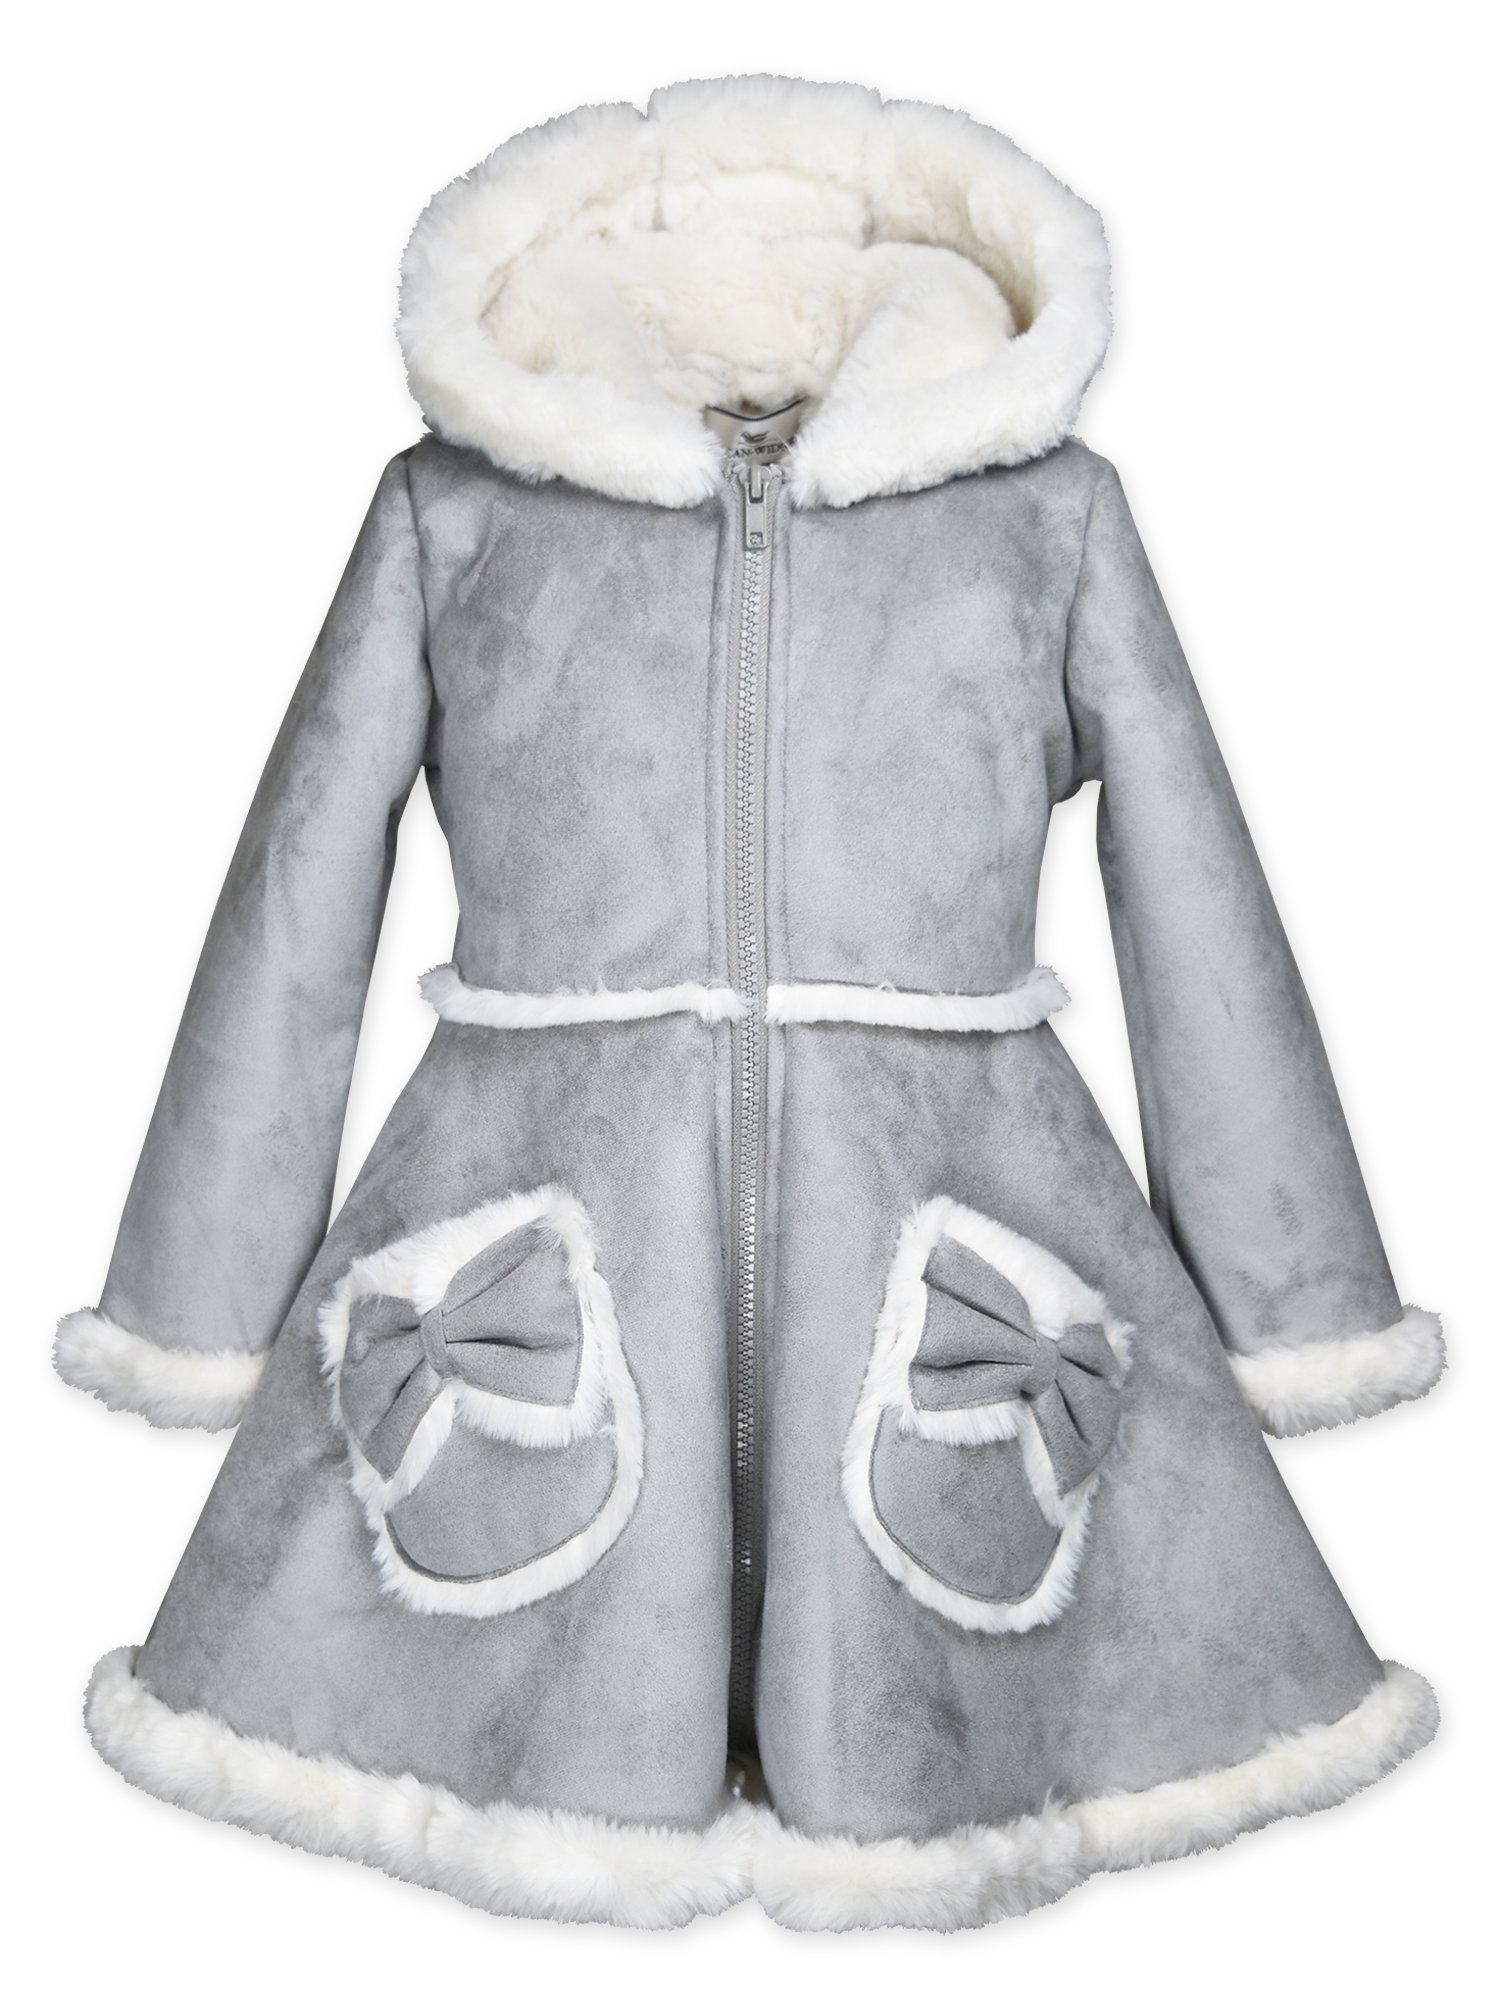 Widgeon Big Girls' Bow Pocket Hooded Faux Suede Coat 3726, Fsy/Grey Faux Suede, 7